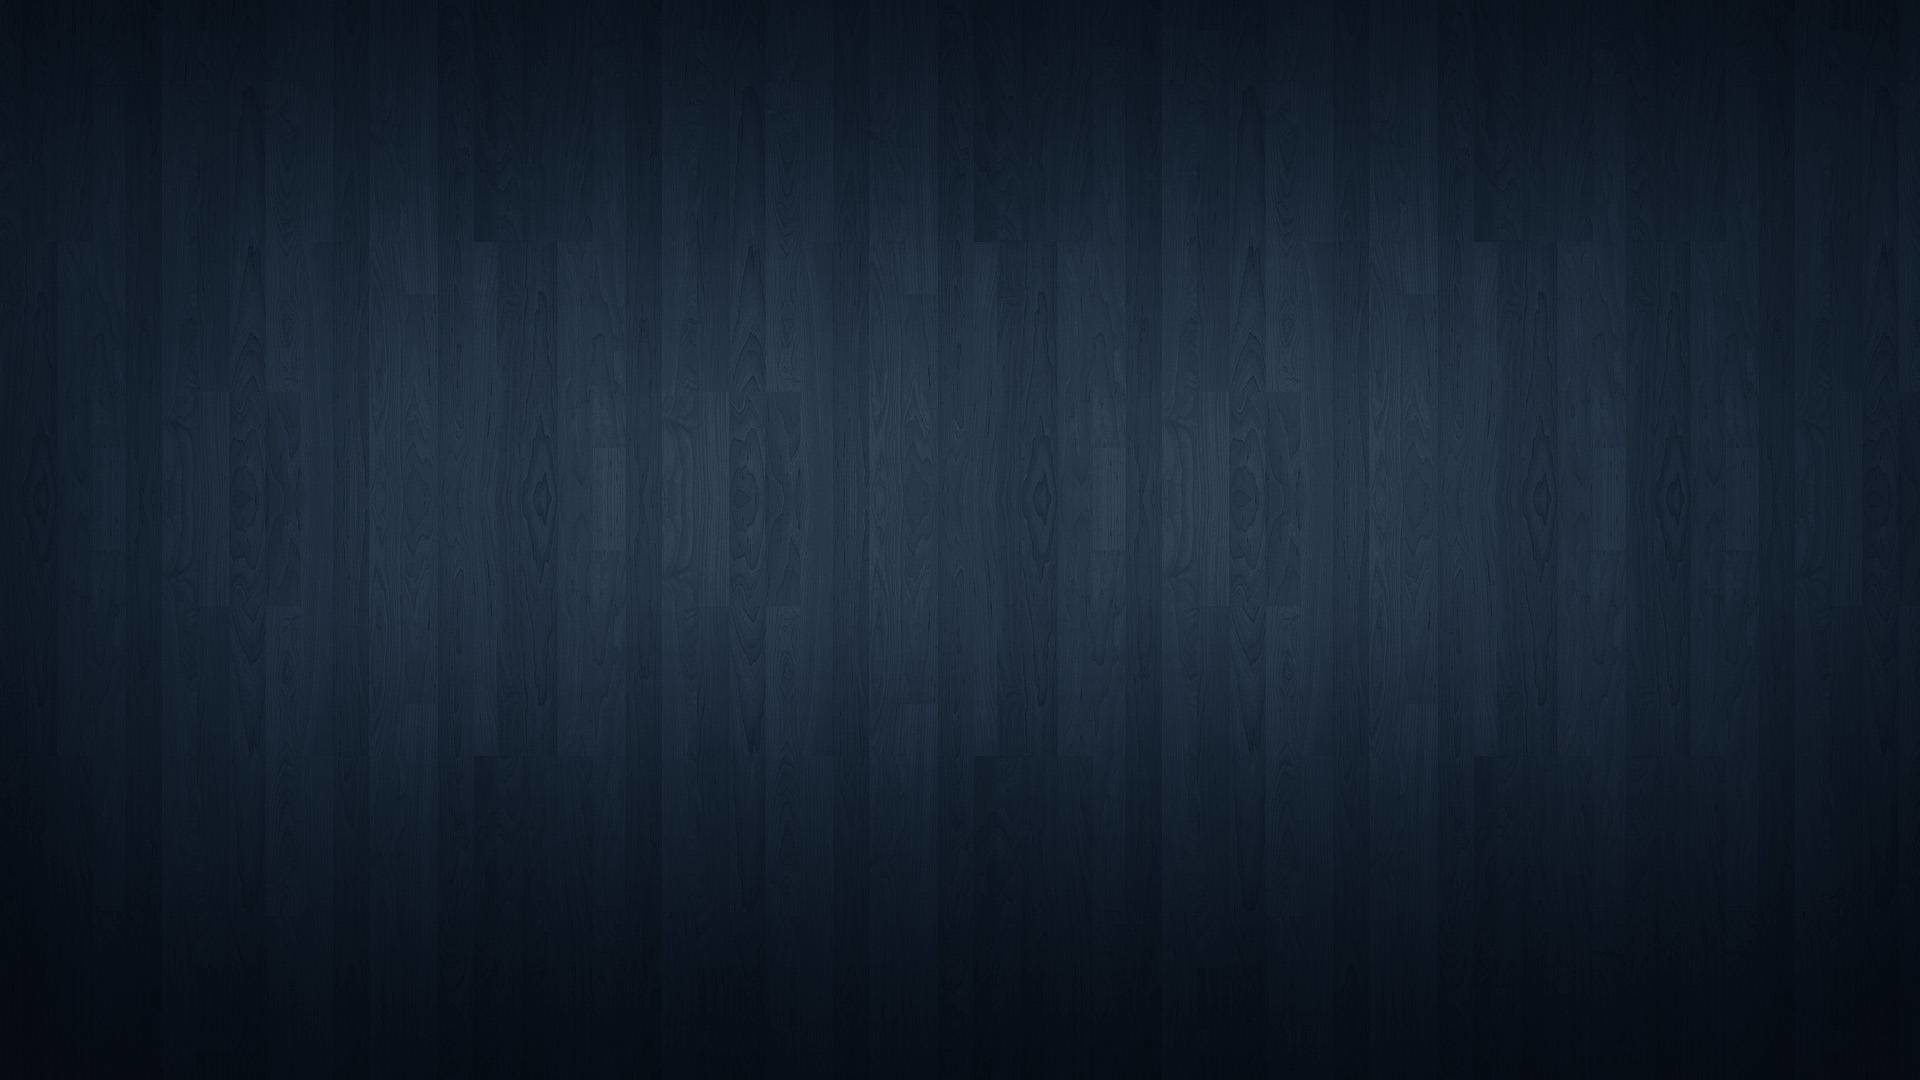 1920x1080 floor-minimalistic-dark-pattern-wood-patterns-dark-wood-wallpaper. ←  Previous · Next →